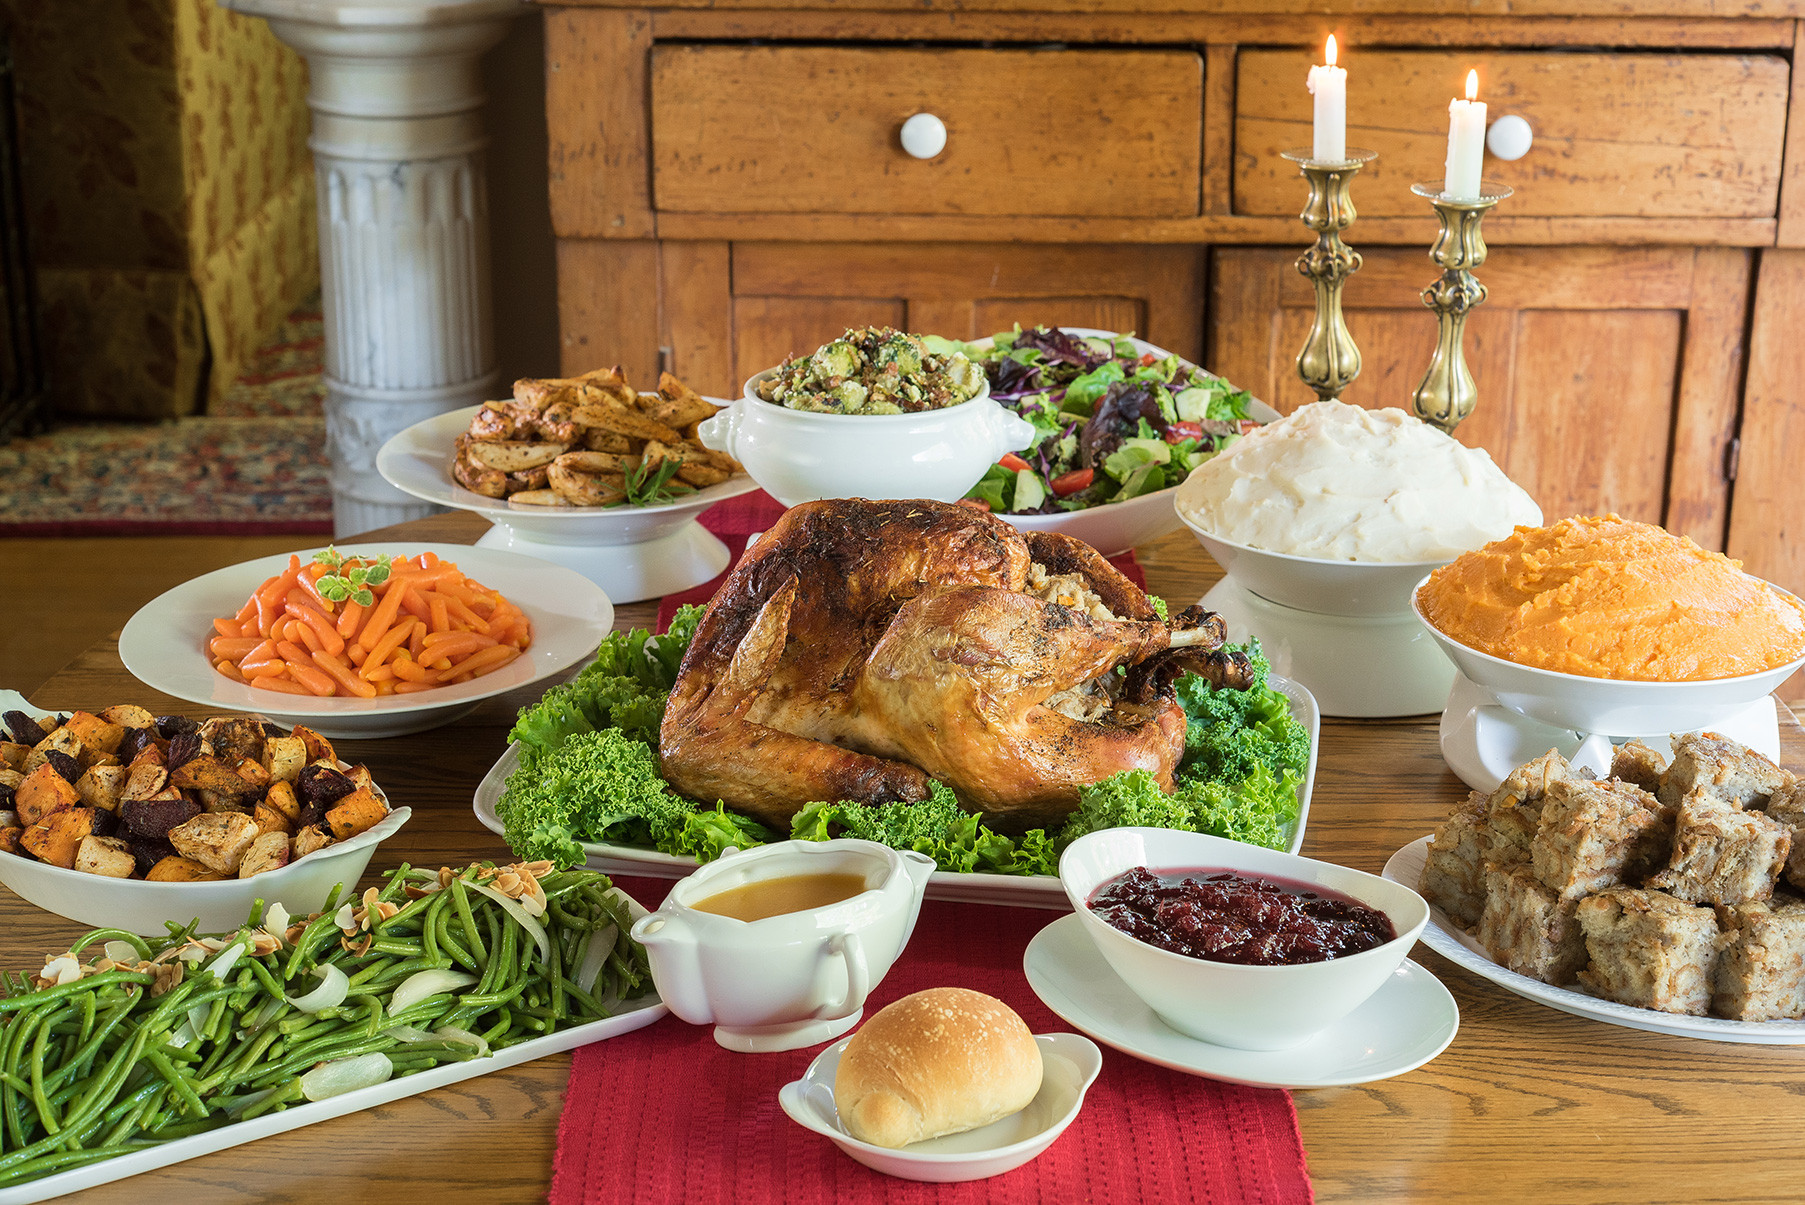 Catered Thanksgiving Dinners  Fall Season Catering Food Specials and Deals at Kiss the Cook